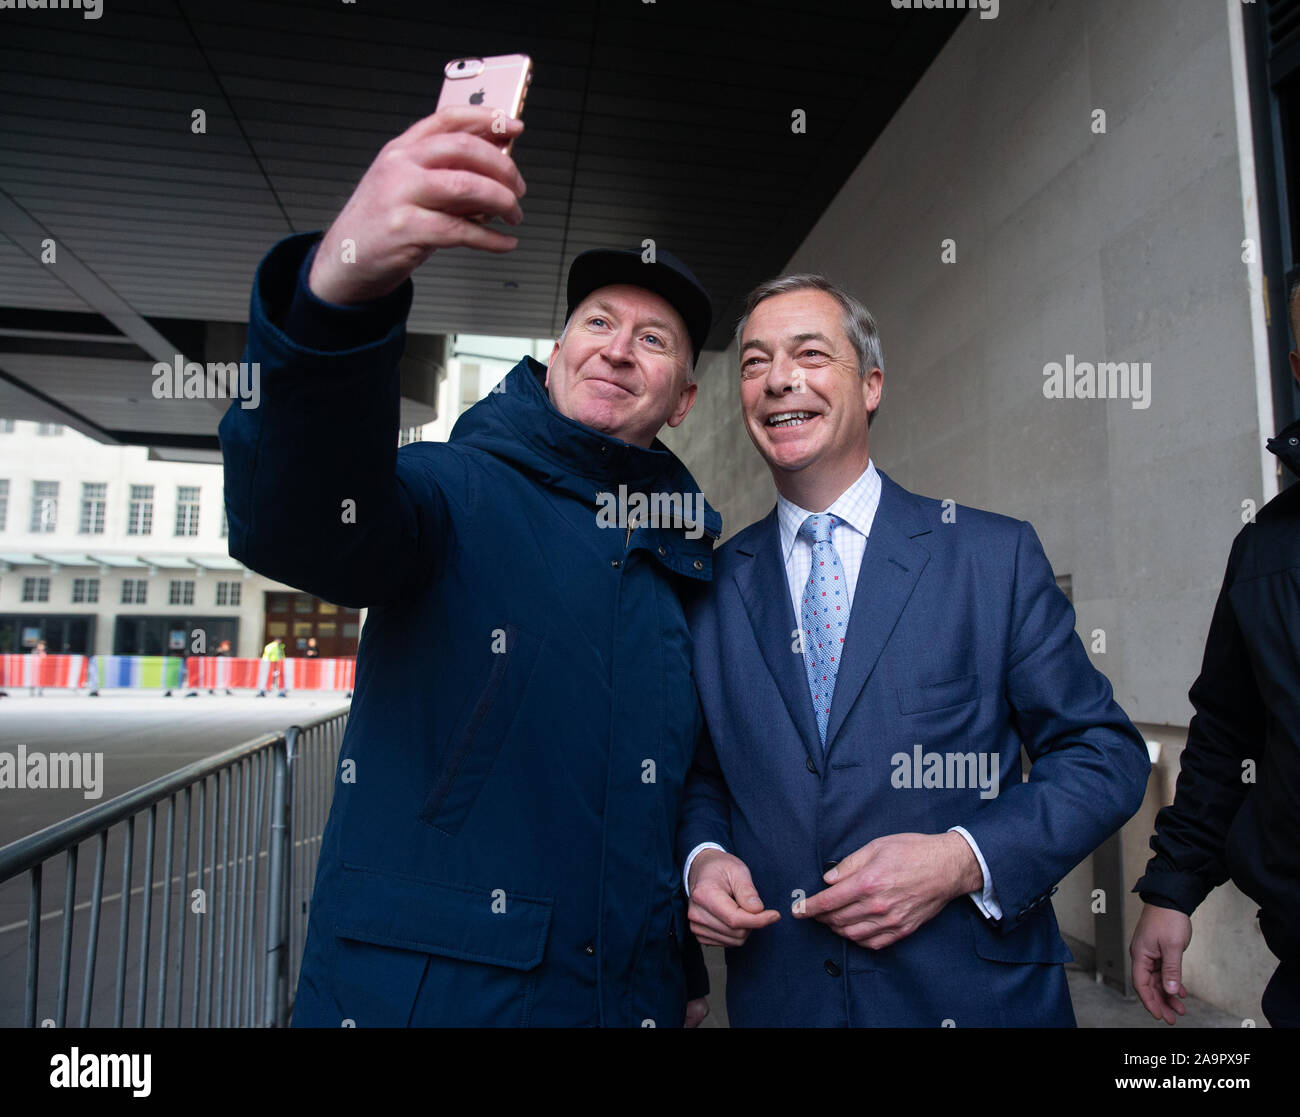 London, UK. 17th Nov, 2019. Brexit Party Leader, Nigel Farage, at the BBC Studios. Credit: Tommy London/Alamy Live News Stock Photo